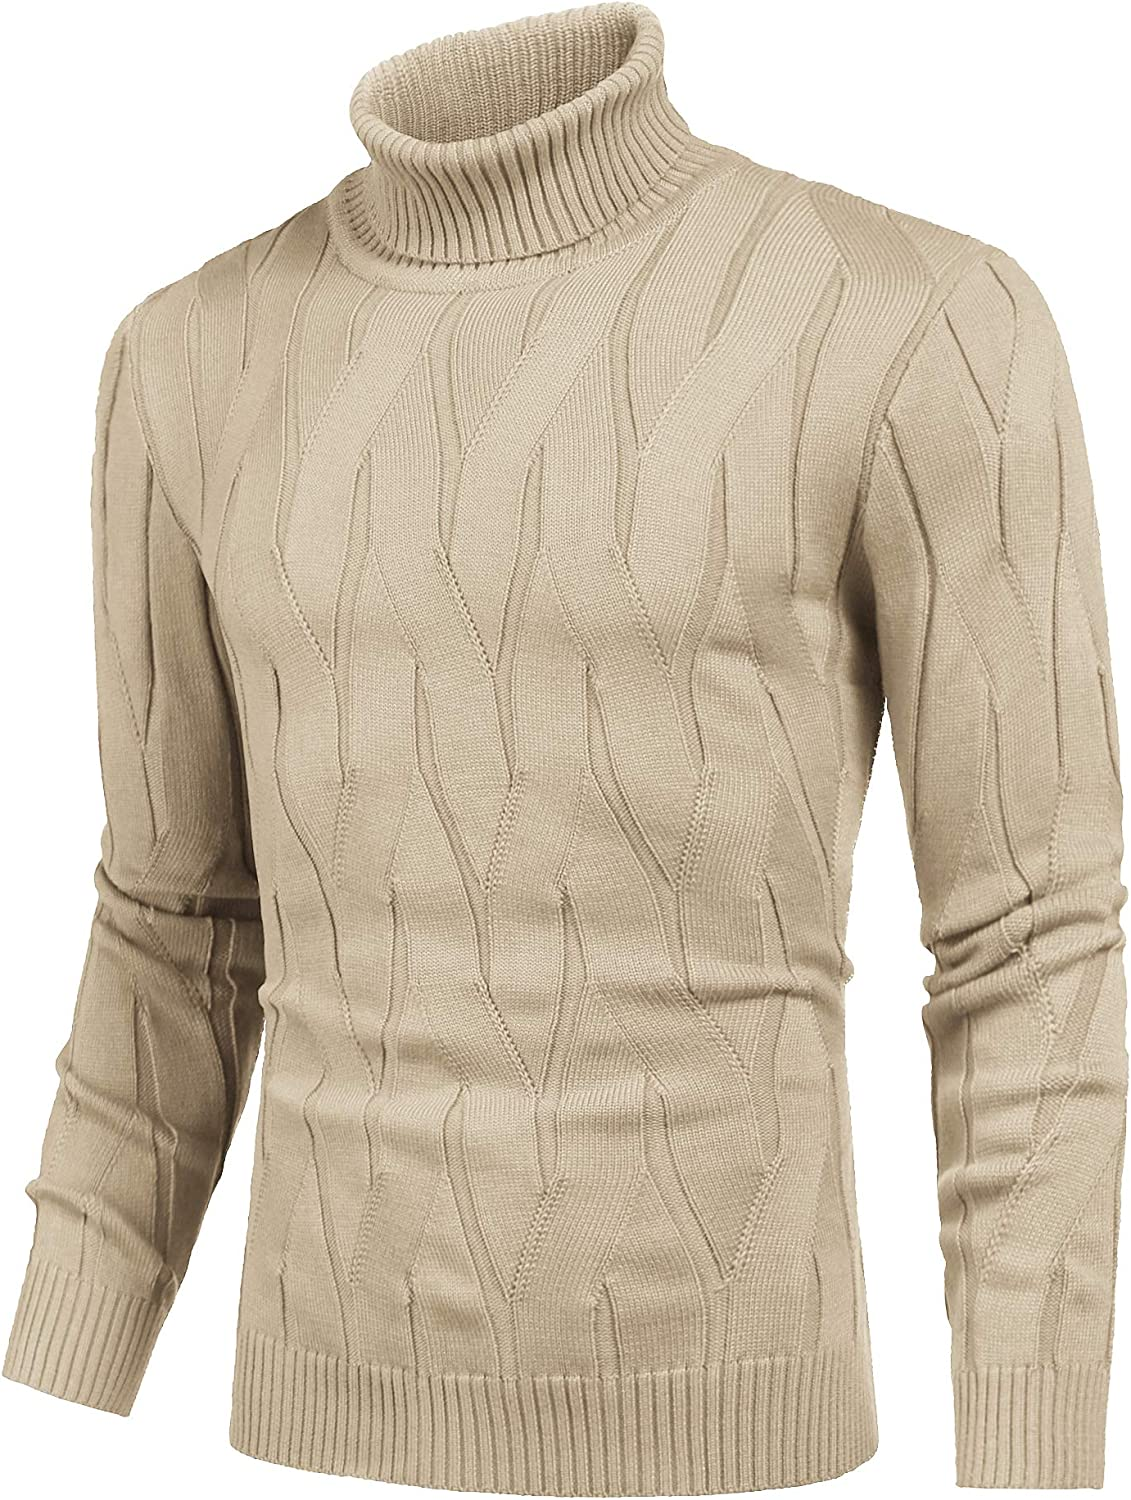 COOFANDY Mens Slim Fit Turtleneck Sweater Casual Knitted Pullover Sweaters